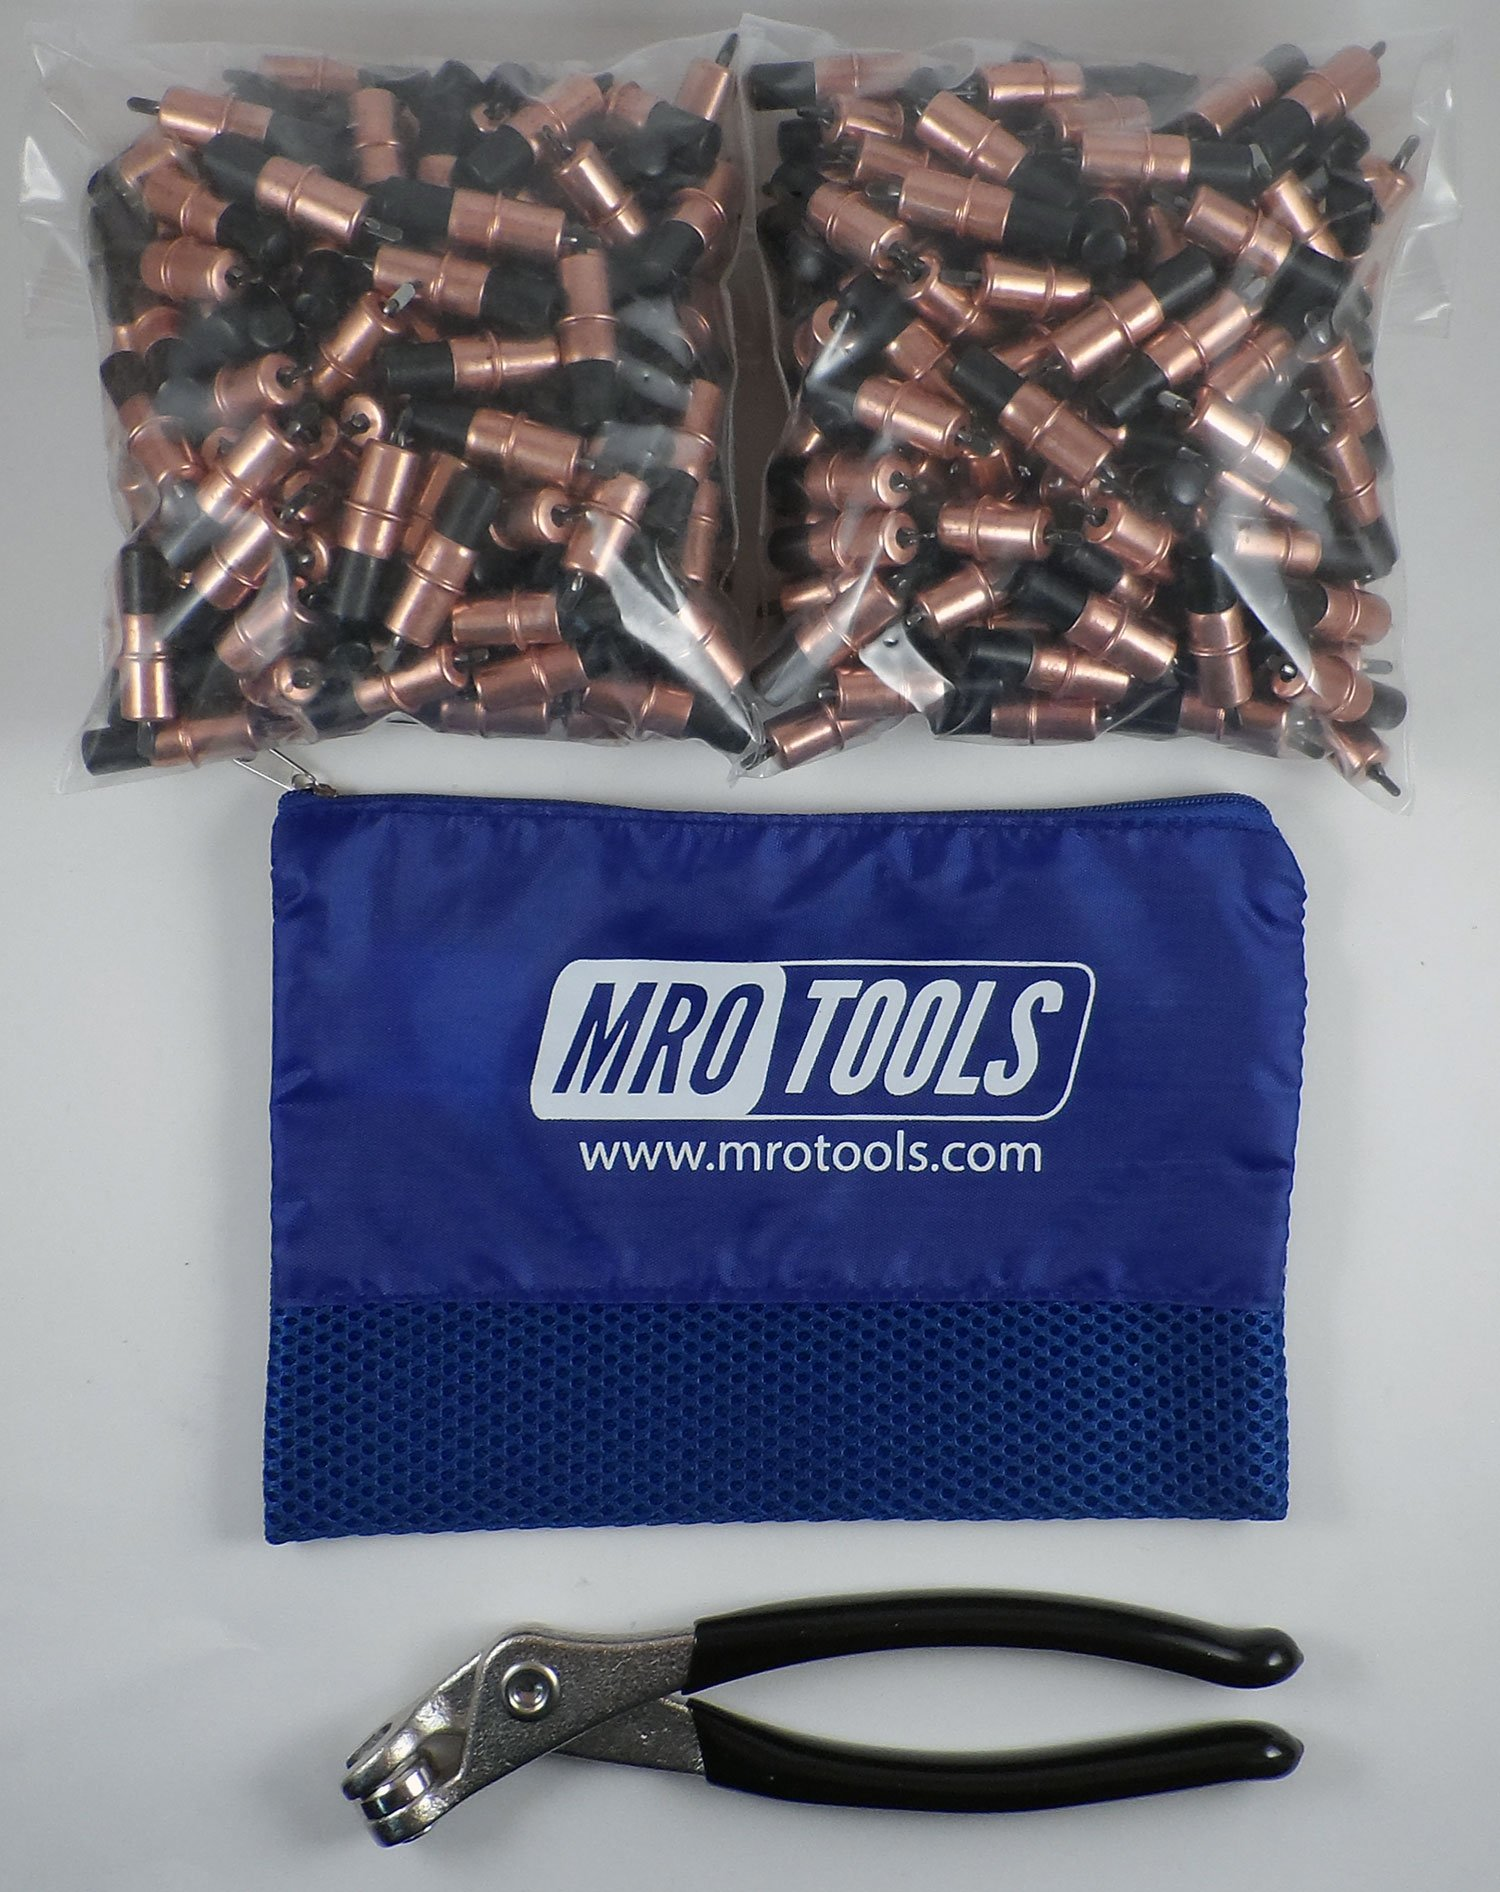 450 1/8 Extra Short Cleco Fasteners + Cleco Pliers w/ Carry Bag (KK1S450-1/8)